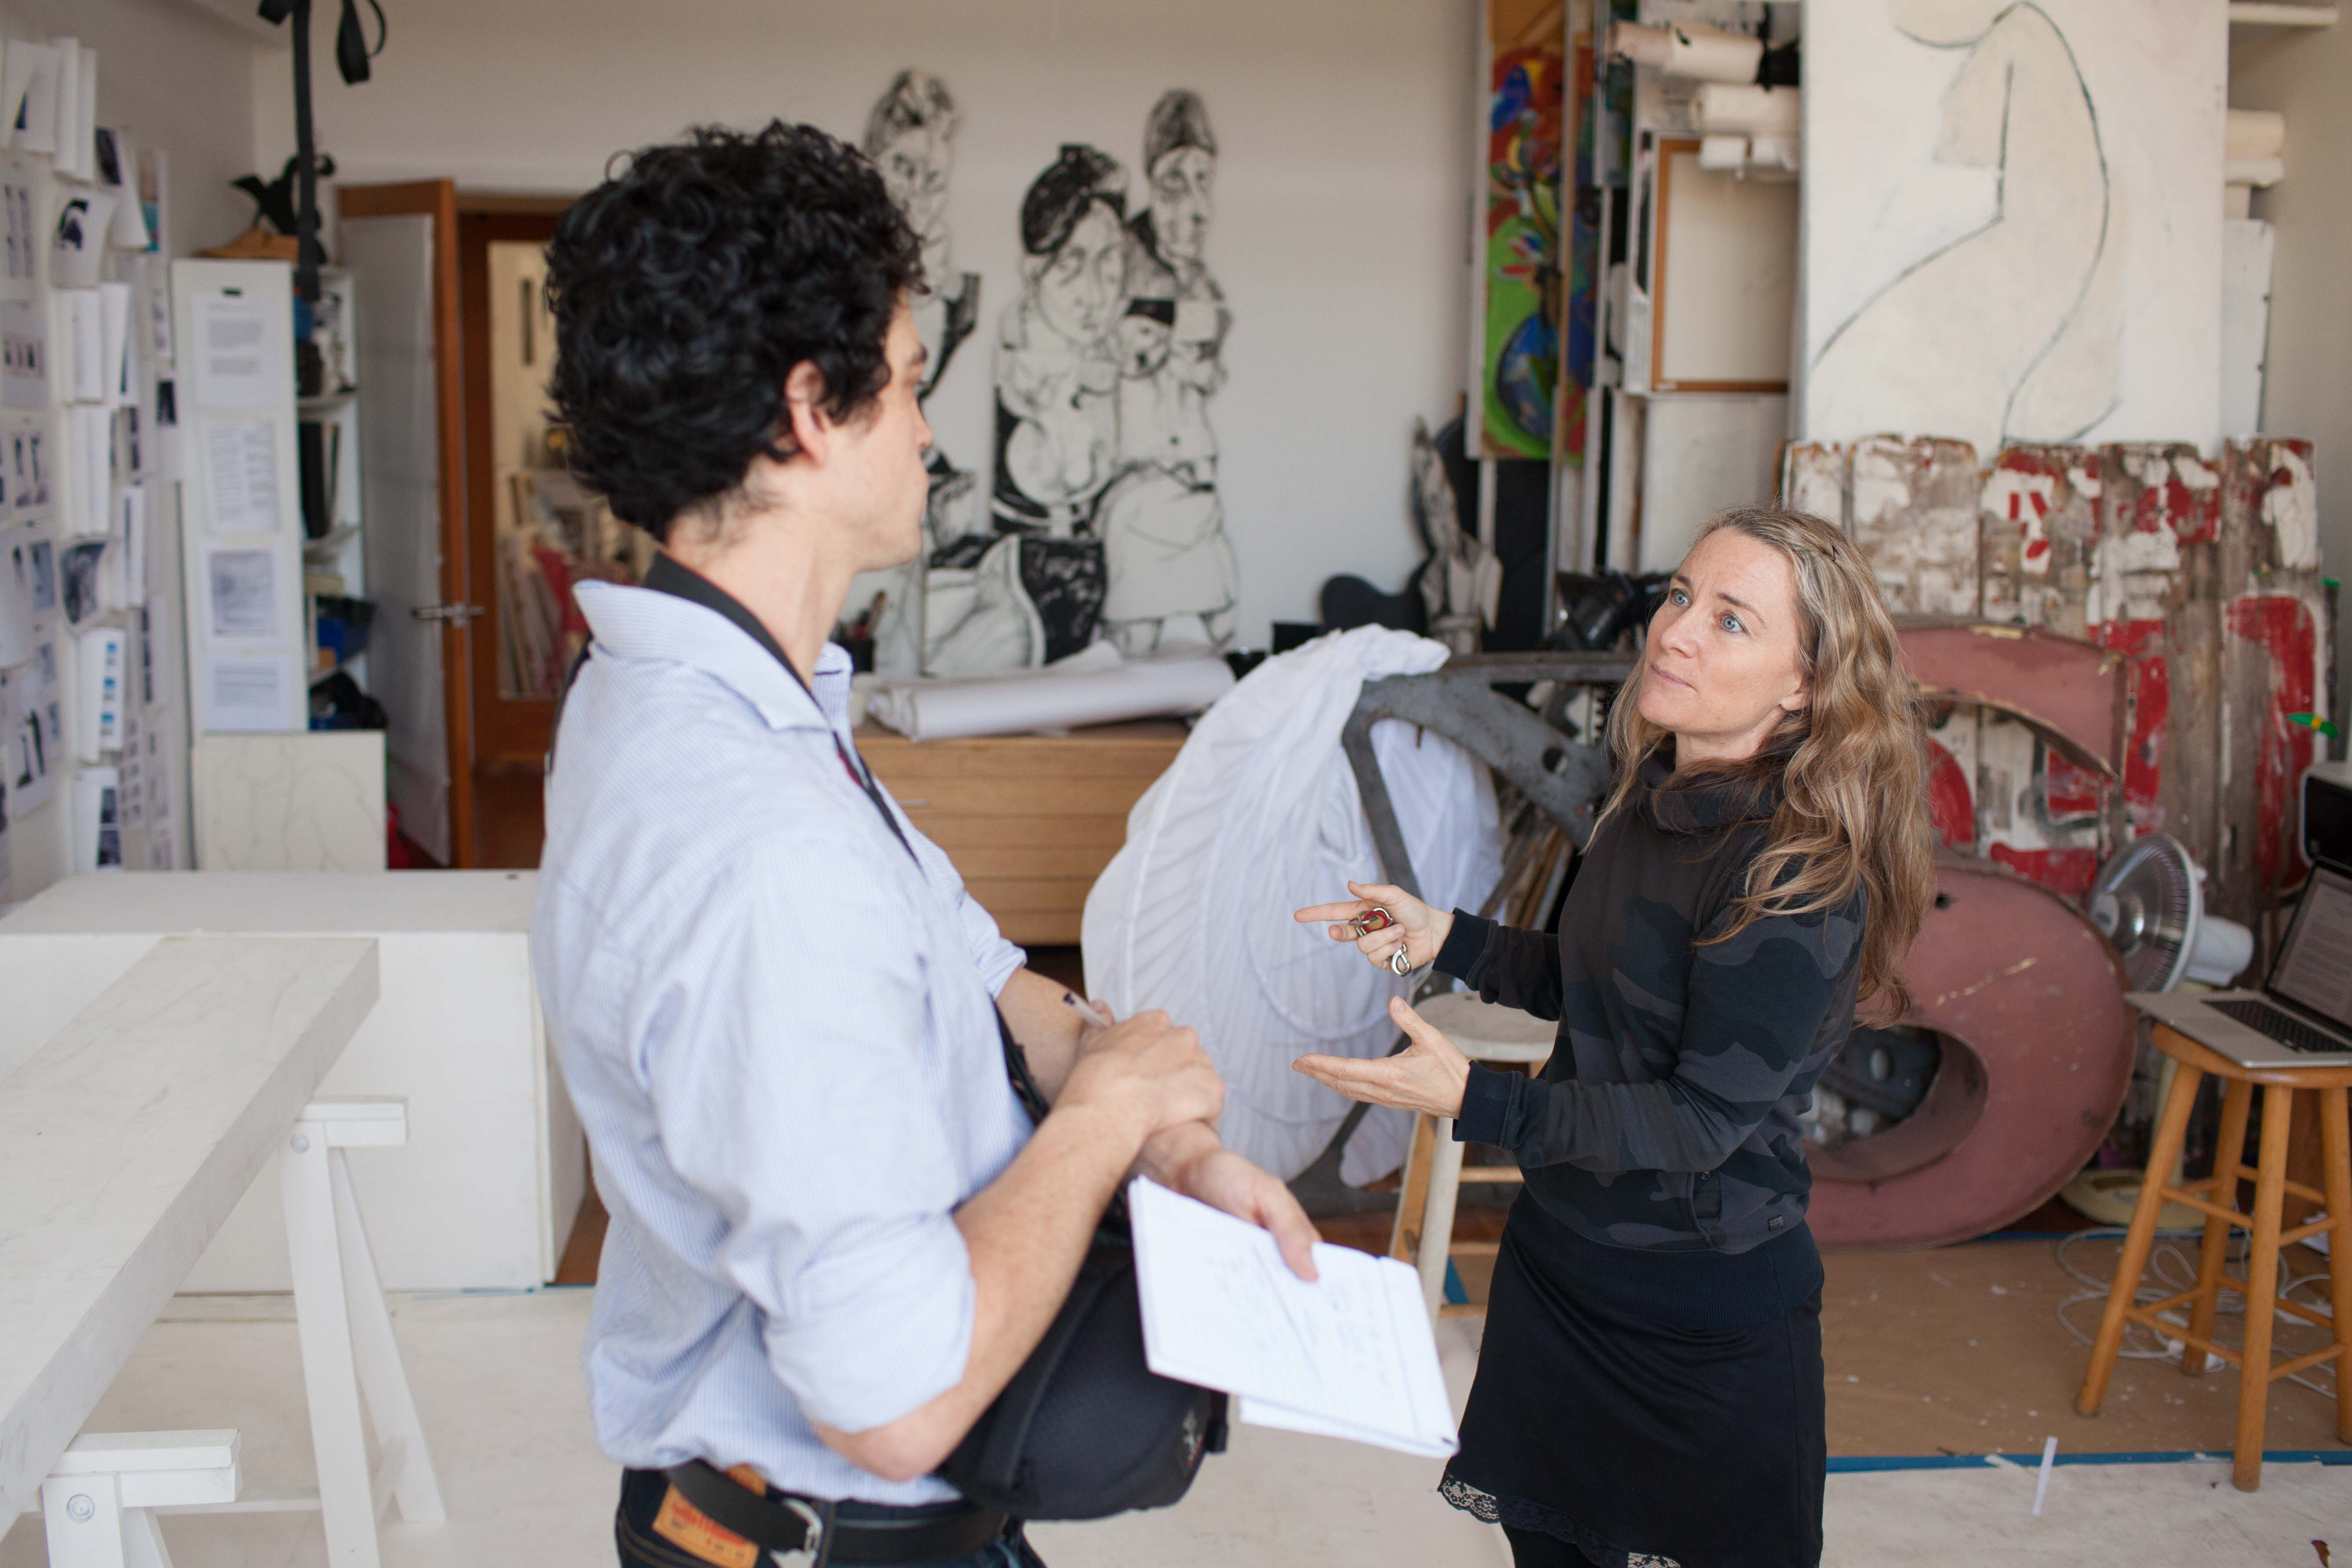 Alex conducting interviews for The Artists Space